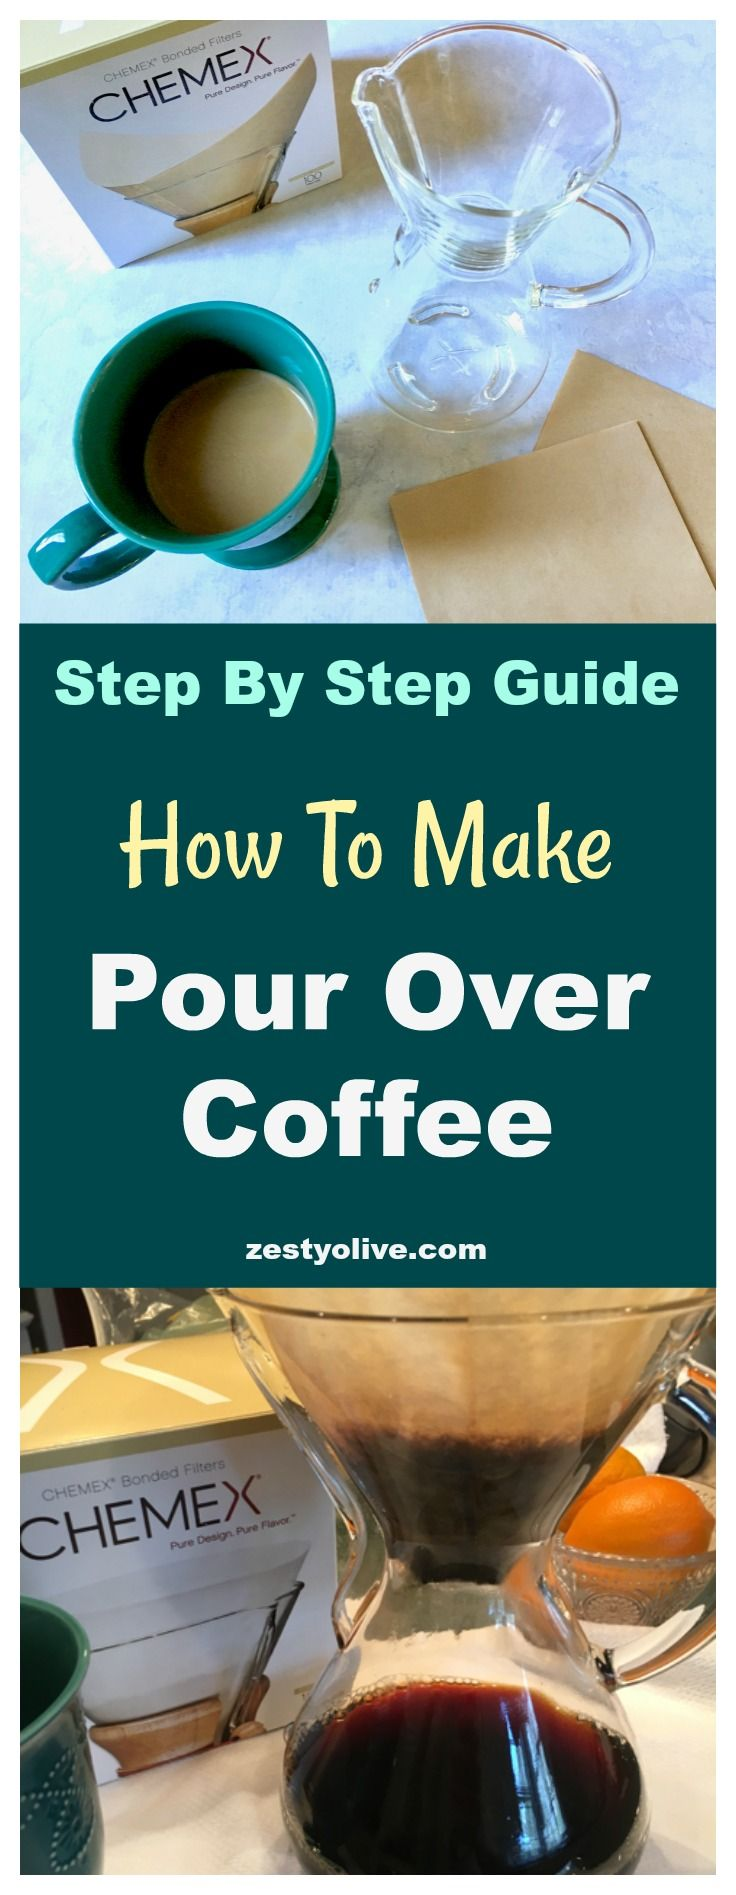 How To Make Pour Over Coffee - A DIY Step By Step Guide Using the Chemex Coffee Carafe #coffee